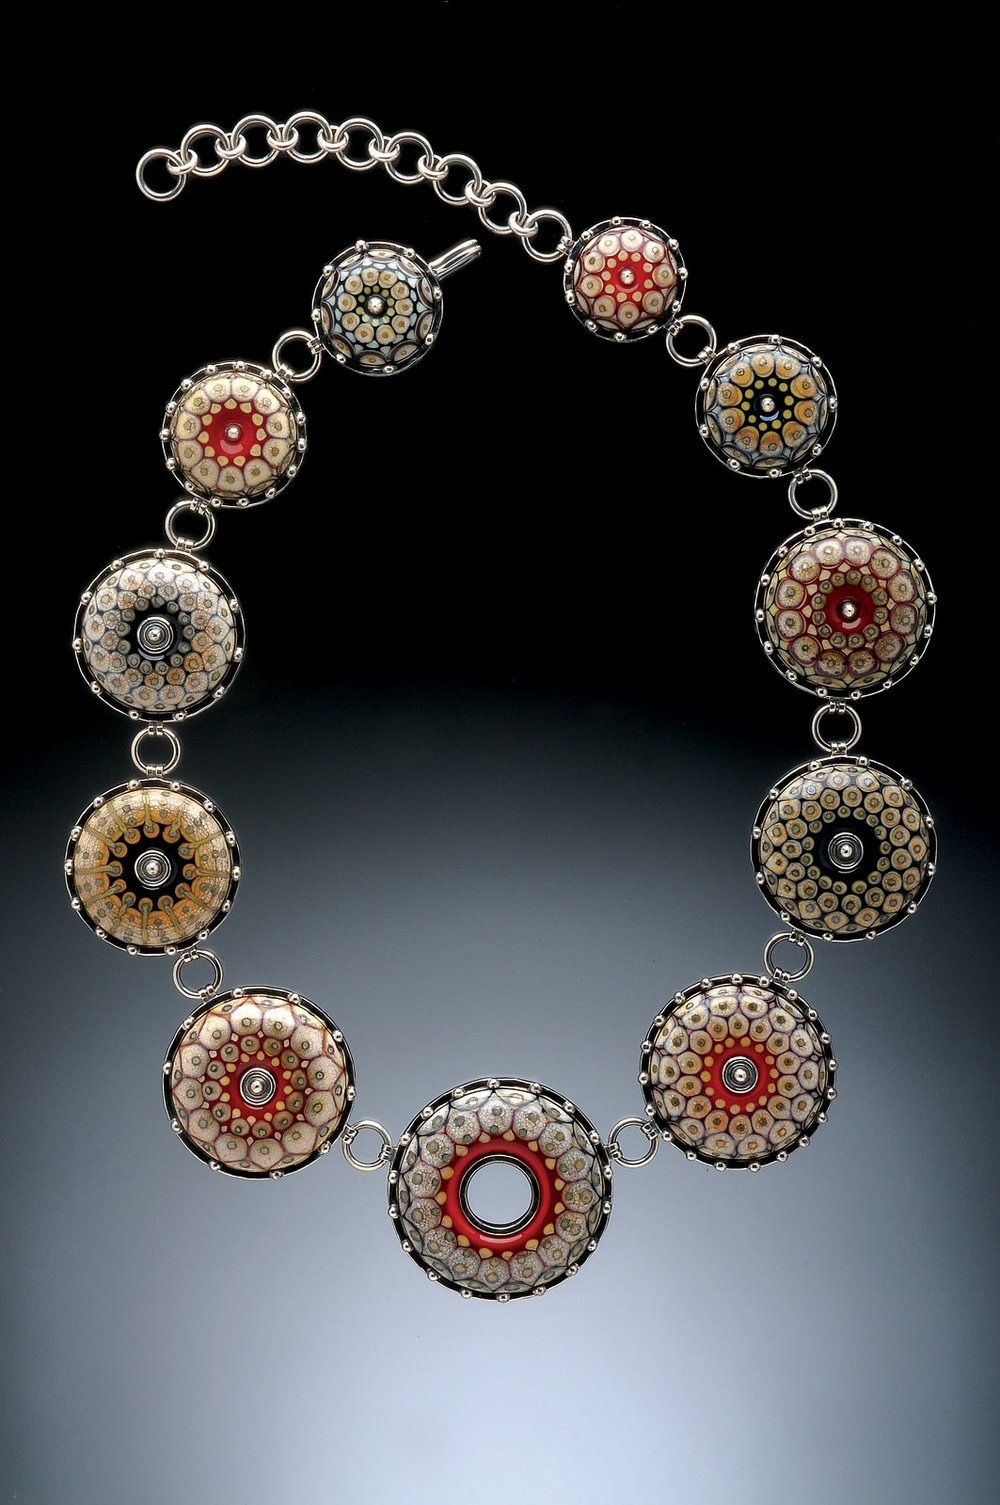 IVORY AND RED CONSTELLATION NECKLACE of flameworked glass and fabricated sterling silver, 4.45 x 1.27 x 66.04 centimeters, 2015. Photograph by Dean Powell.